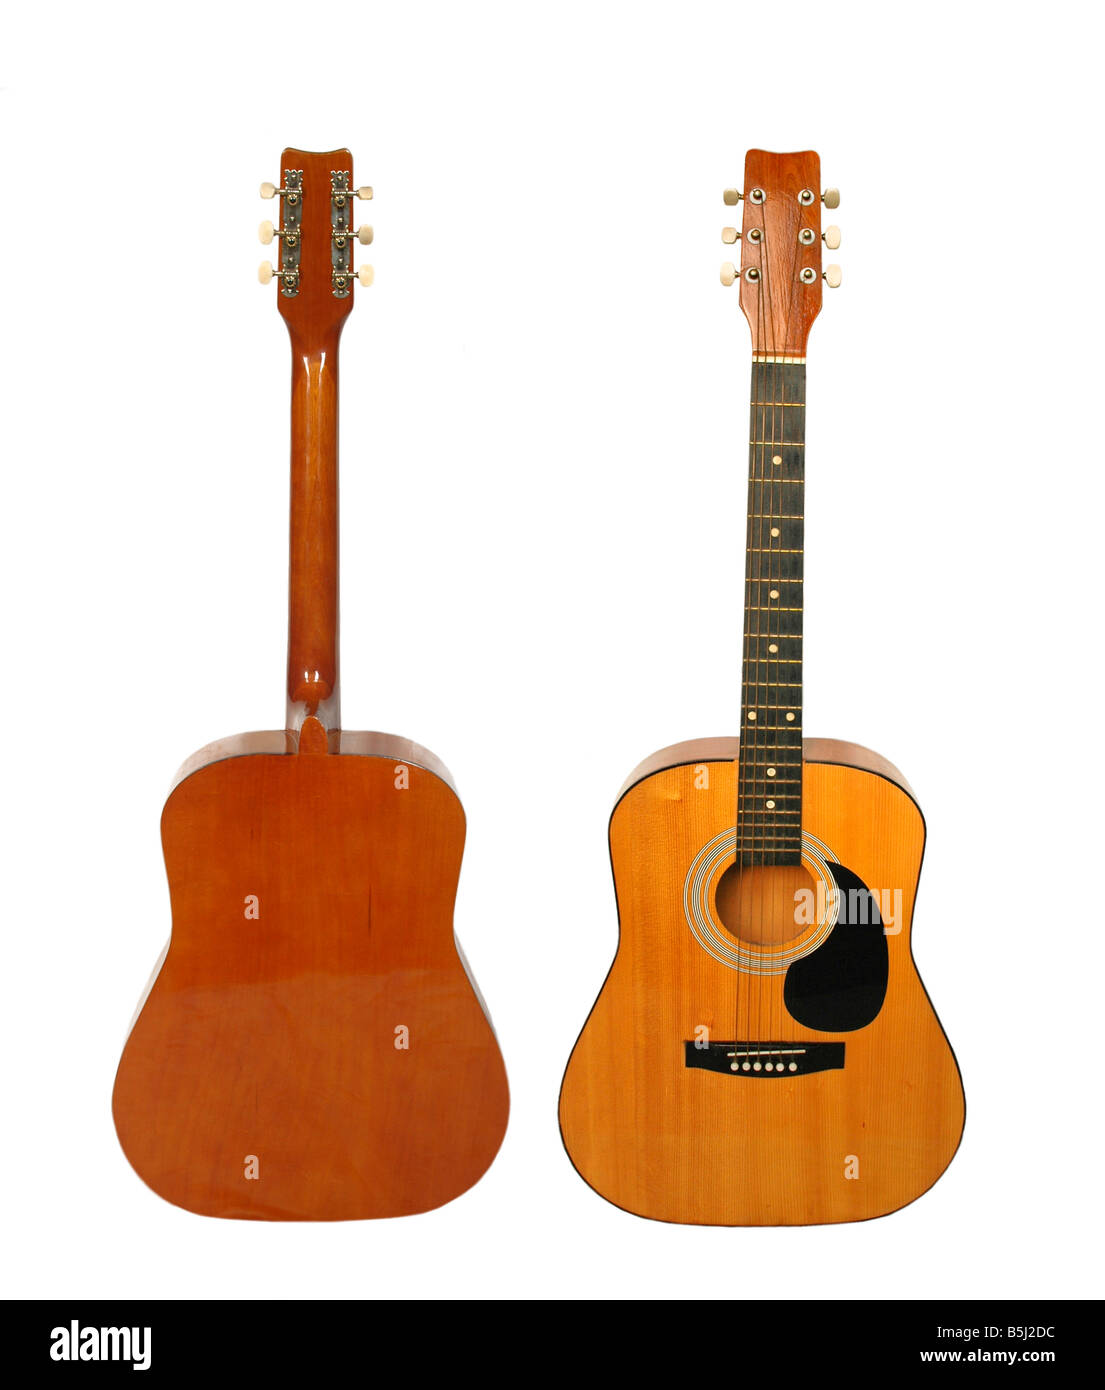 Front and back view of a guitar stock photo 20680728 alamy front and back view of a guitar sciox Gallery